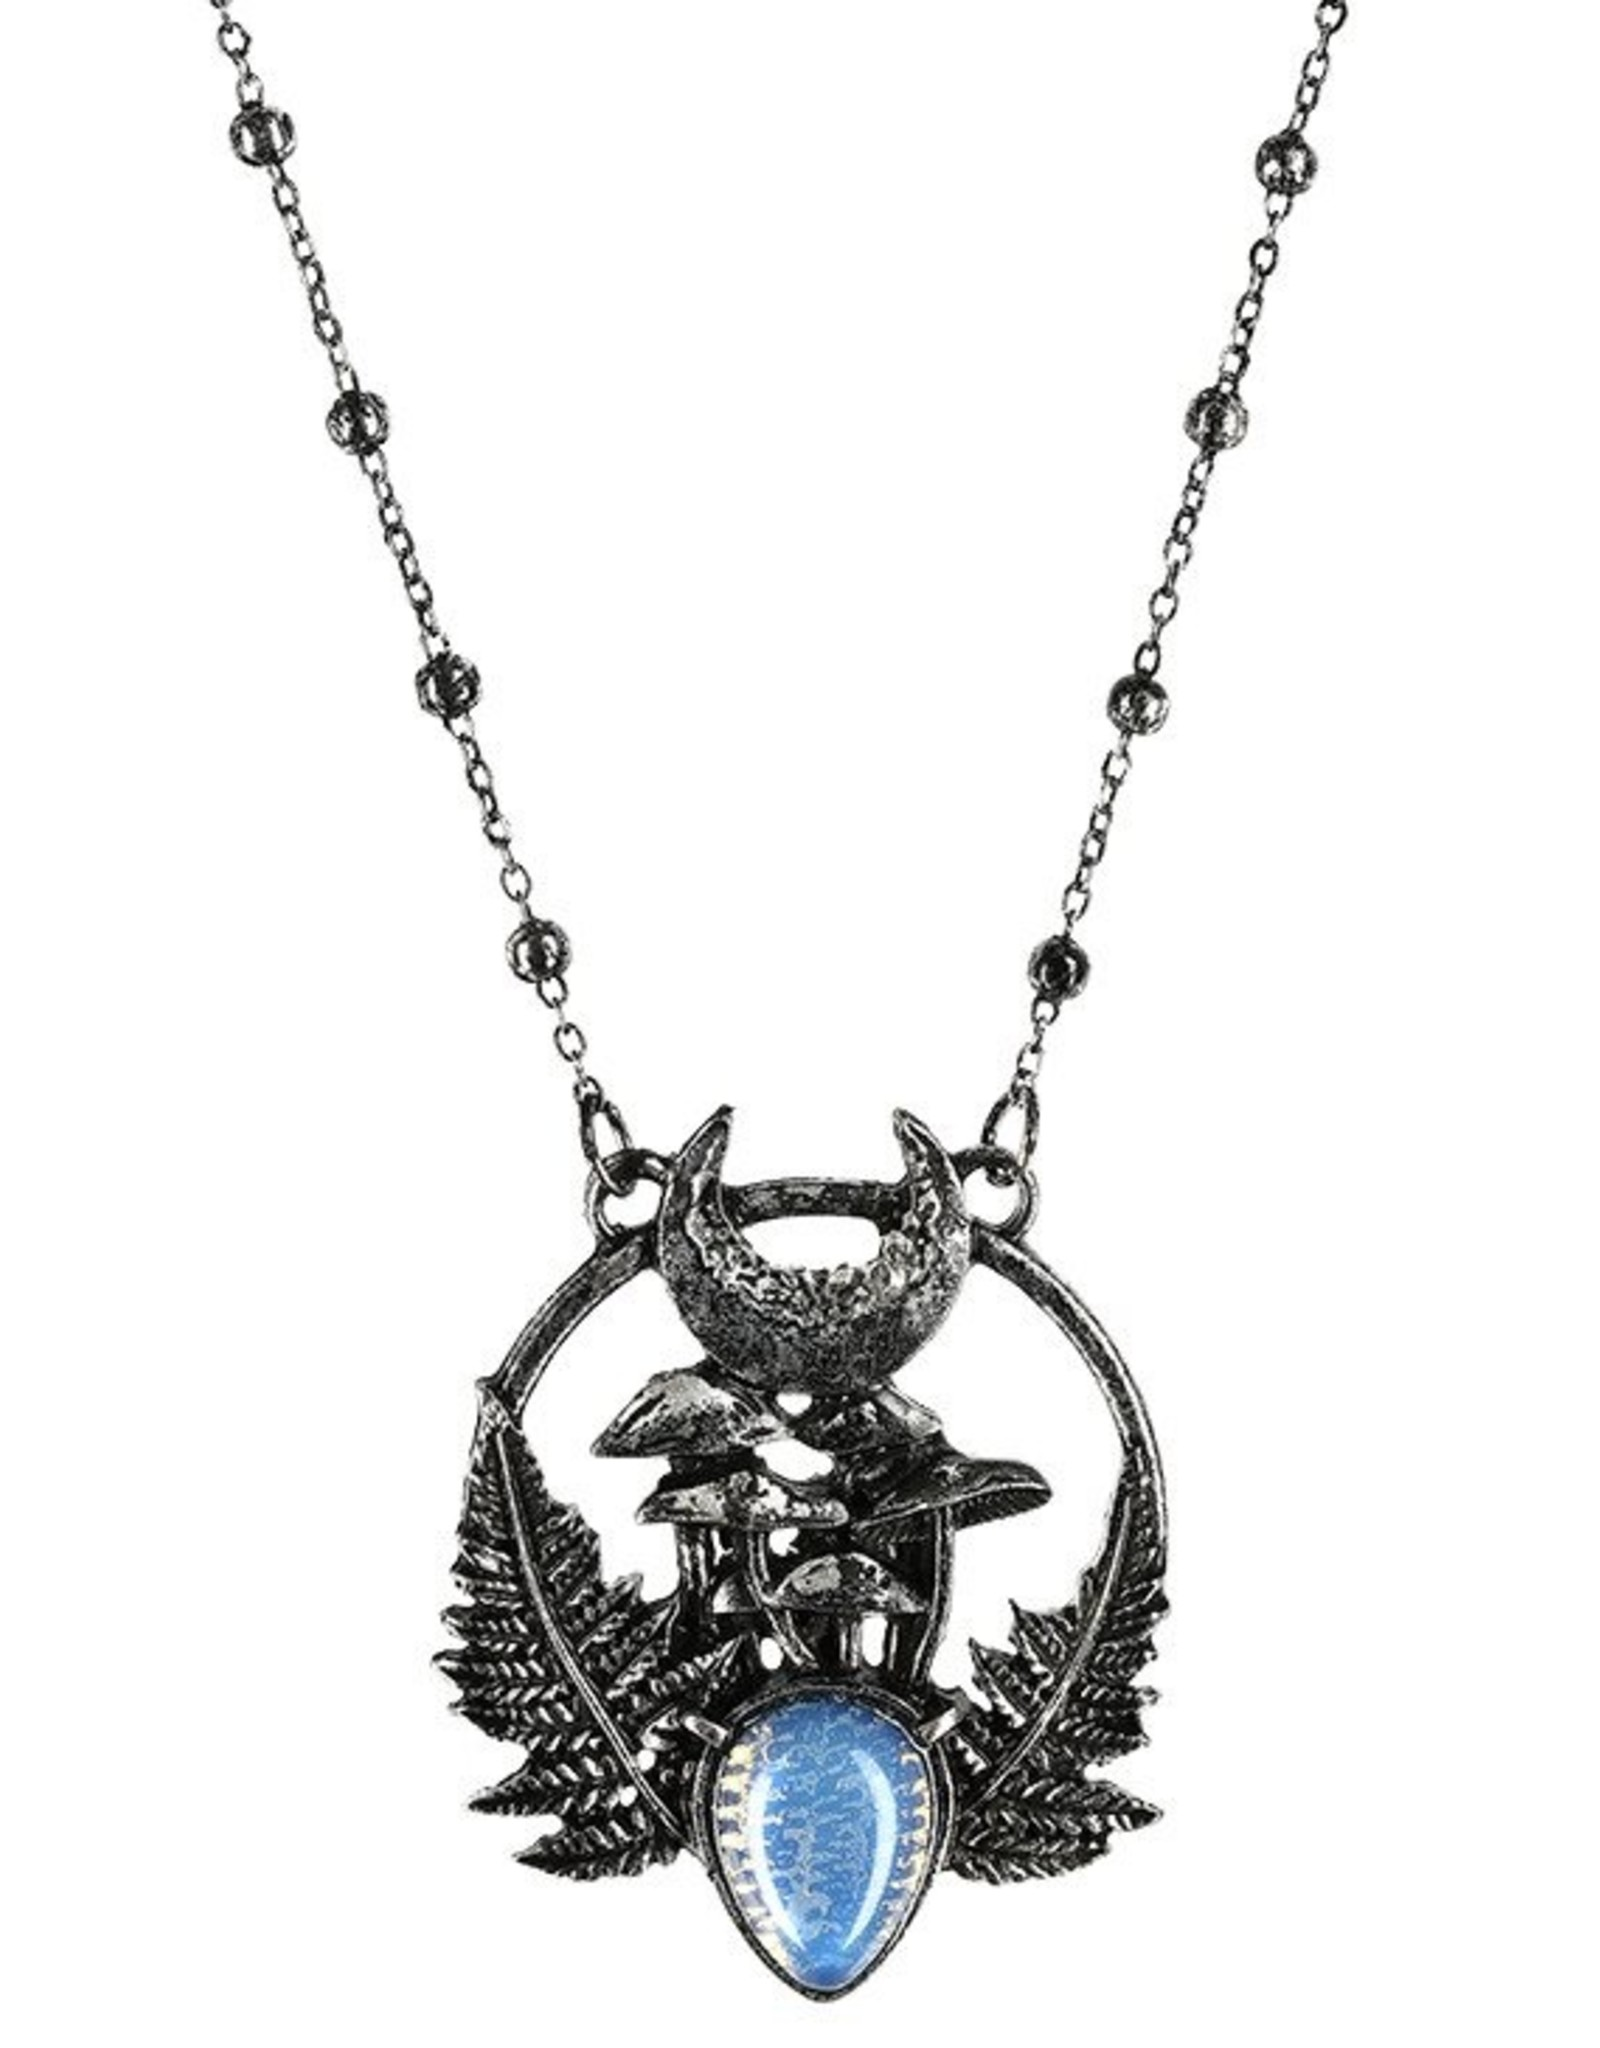 Restyle Gothic en Steampunk accessoires - Ketting met Maansteen Magic Forest - Restyle